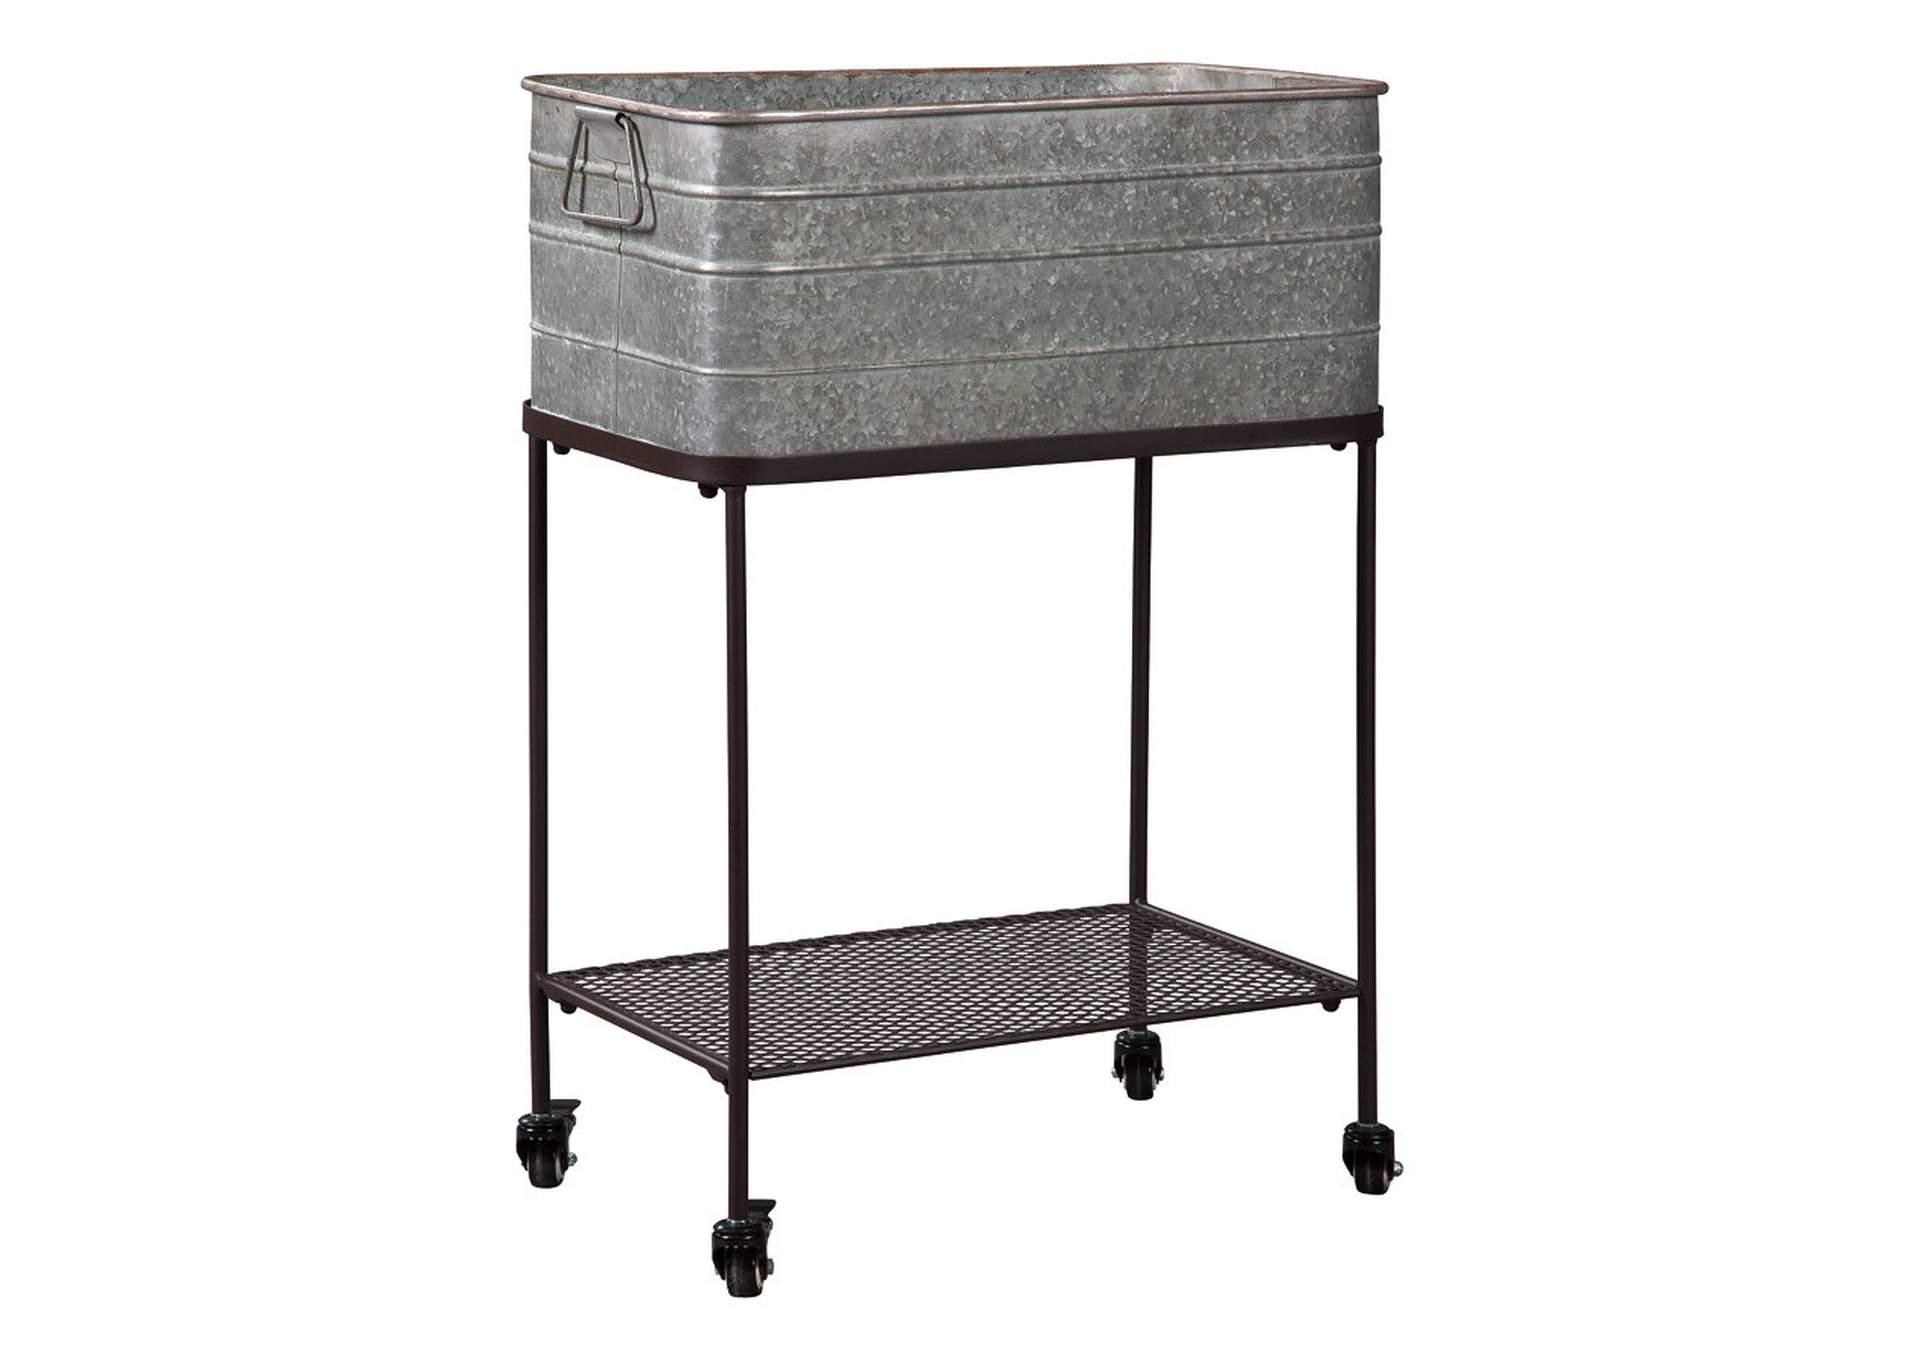 Vossman Antique Gray/Brown Metal Beverage Tub,Signature Design By Ashley